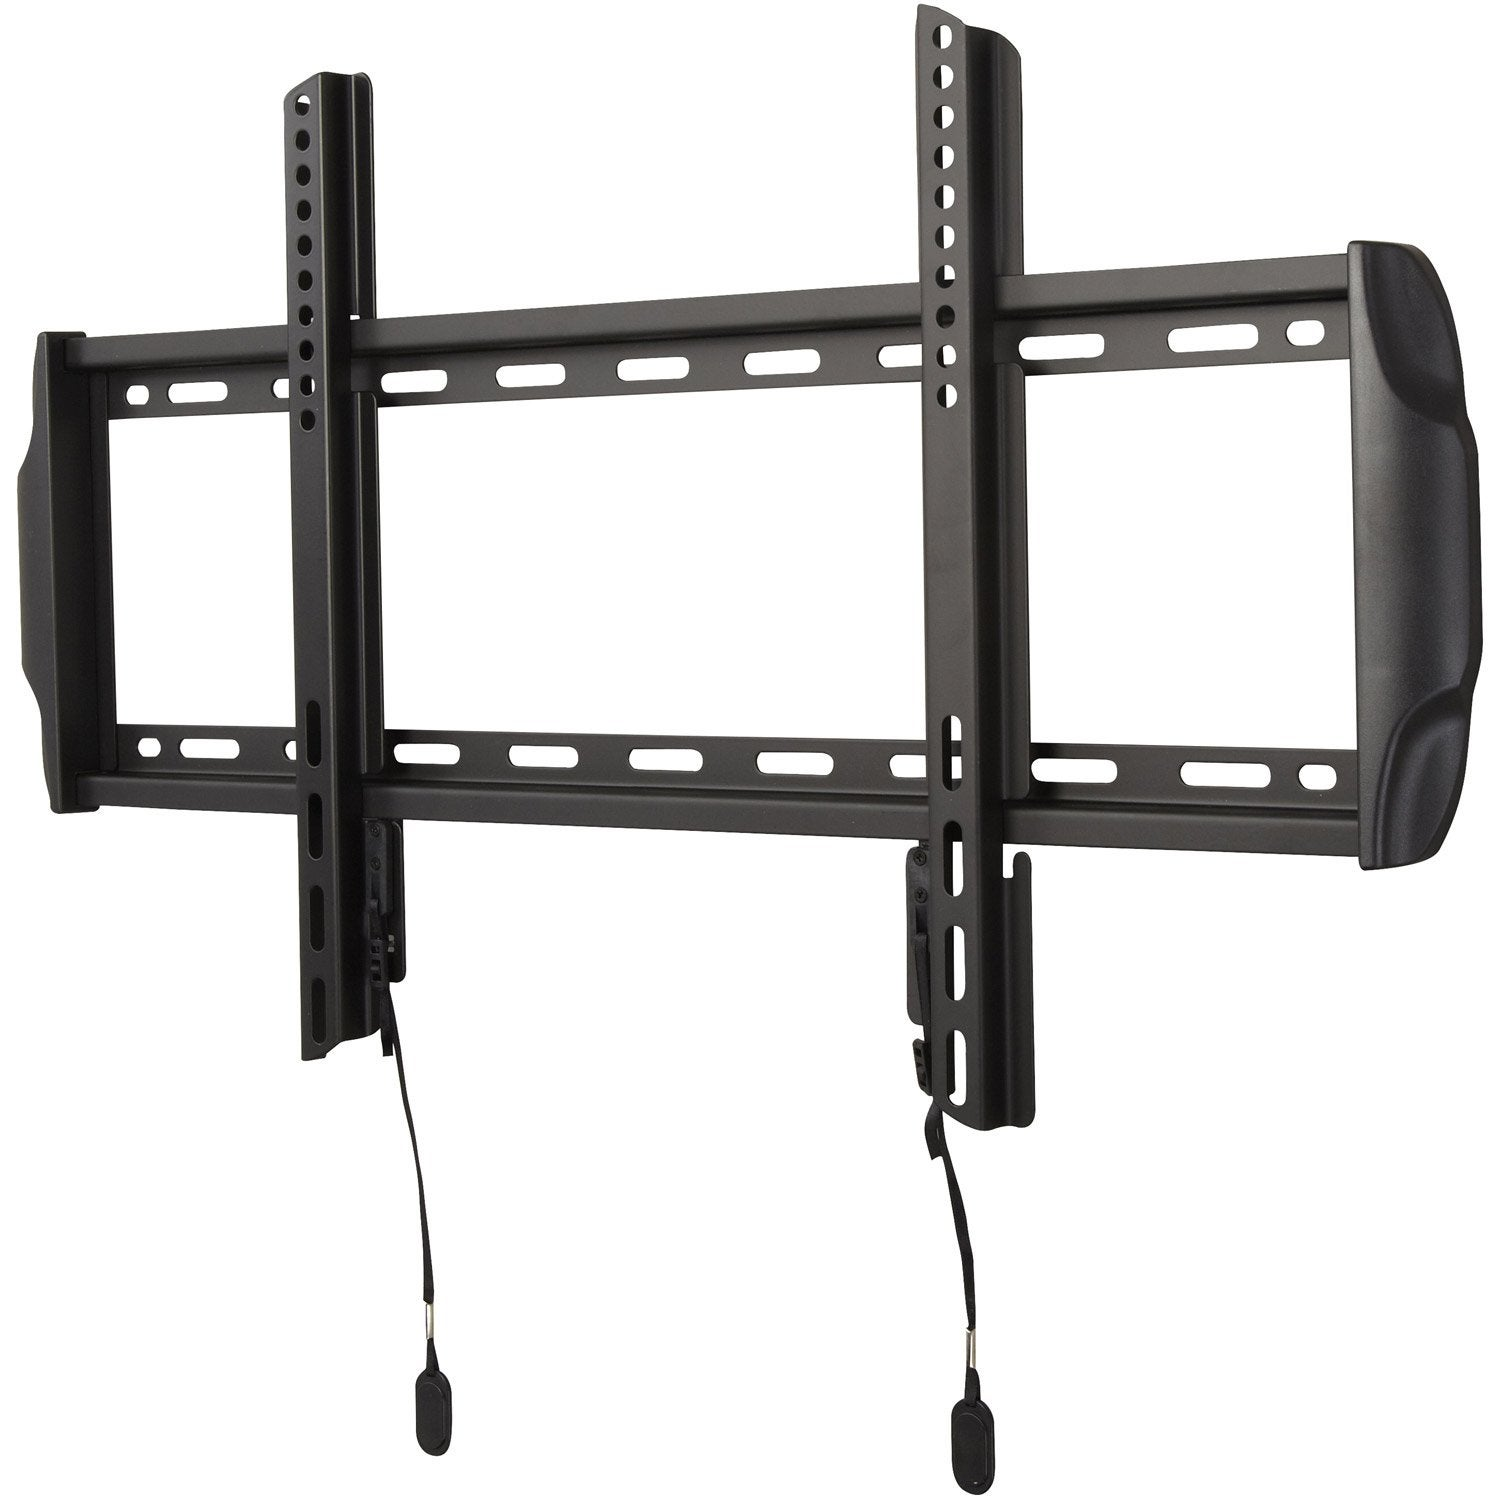 support tv led n oplasma visionic 80 139 cm 45 kg leroy merlin. Black Bedroom Furniture Sets. Home Design Ideas